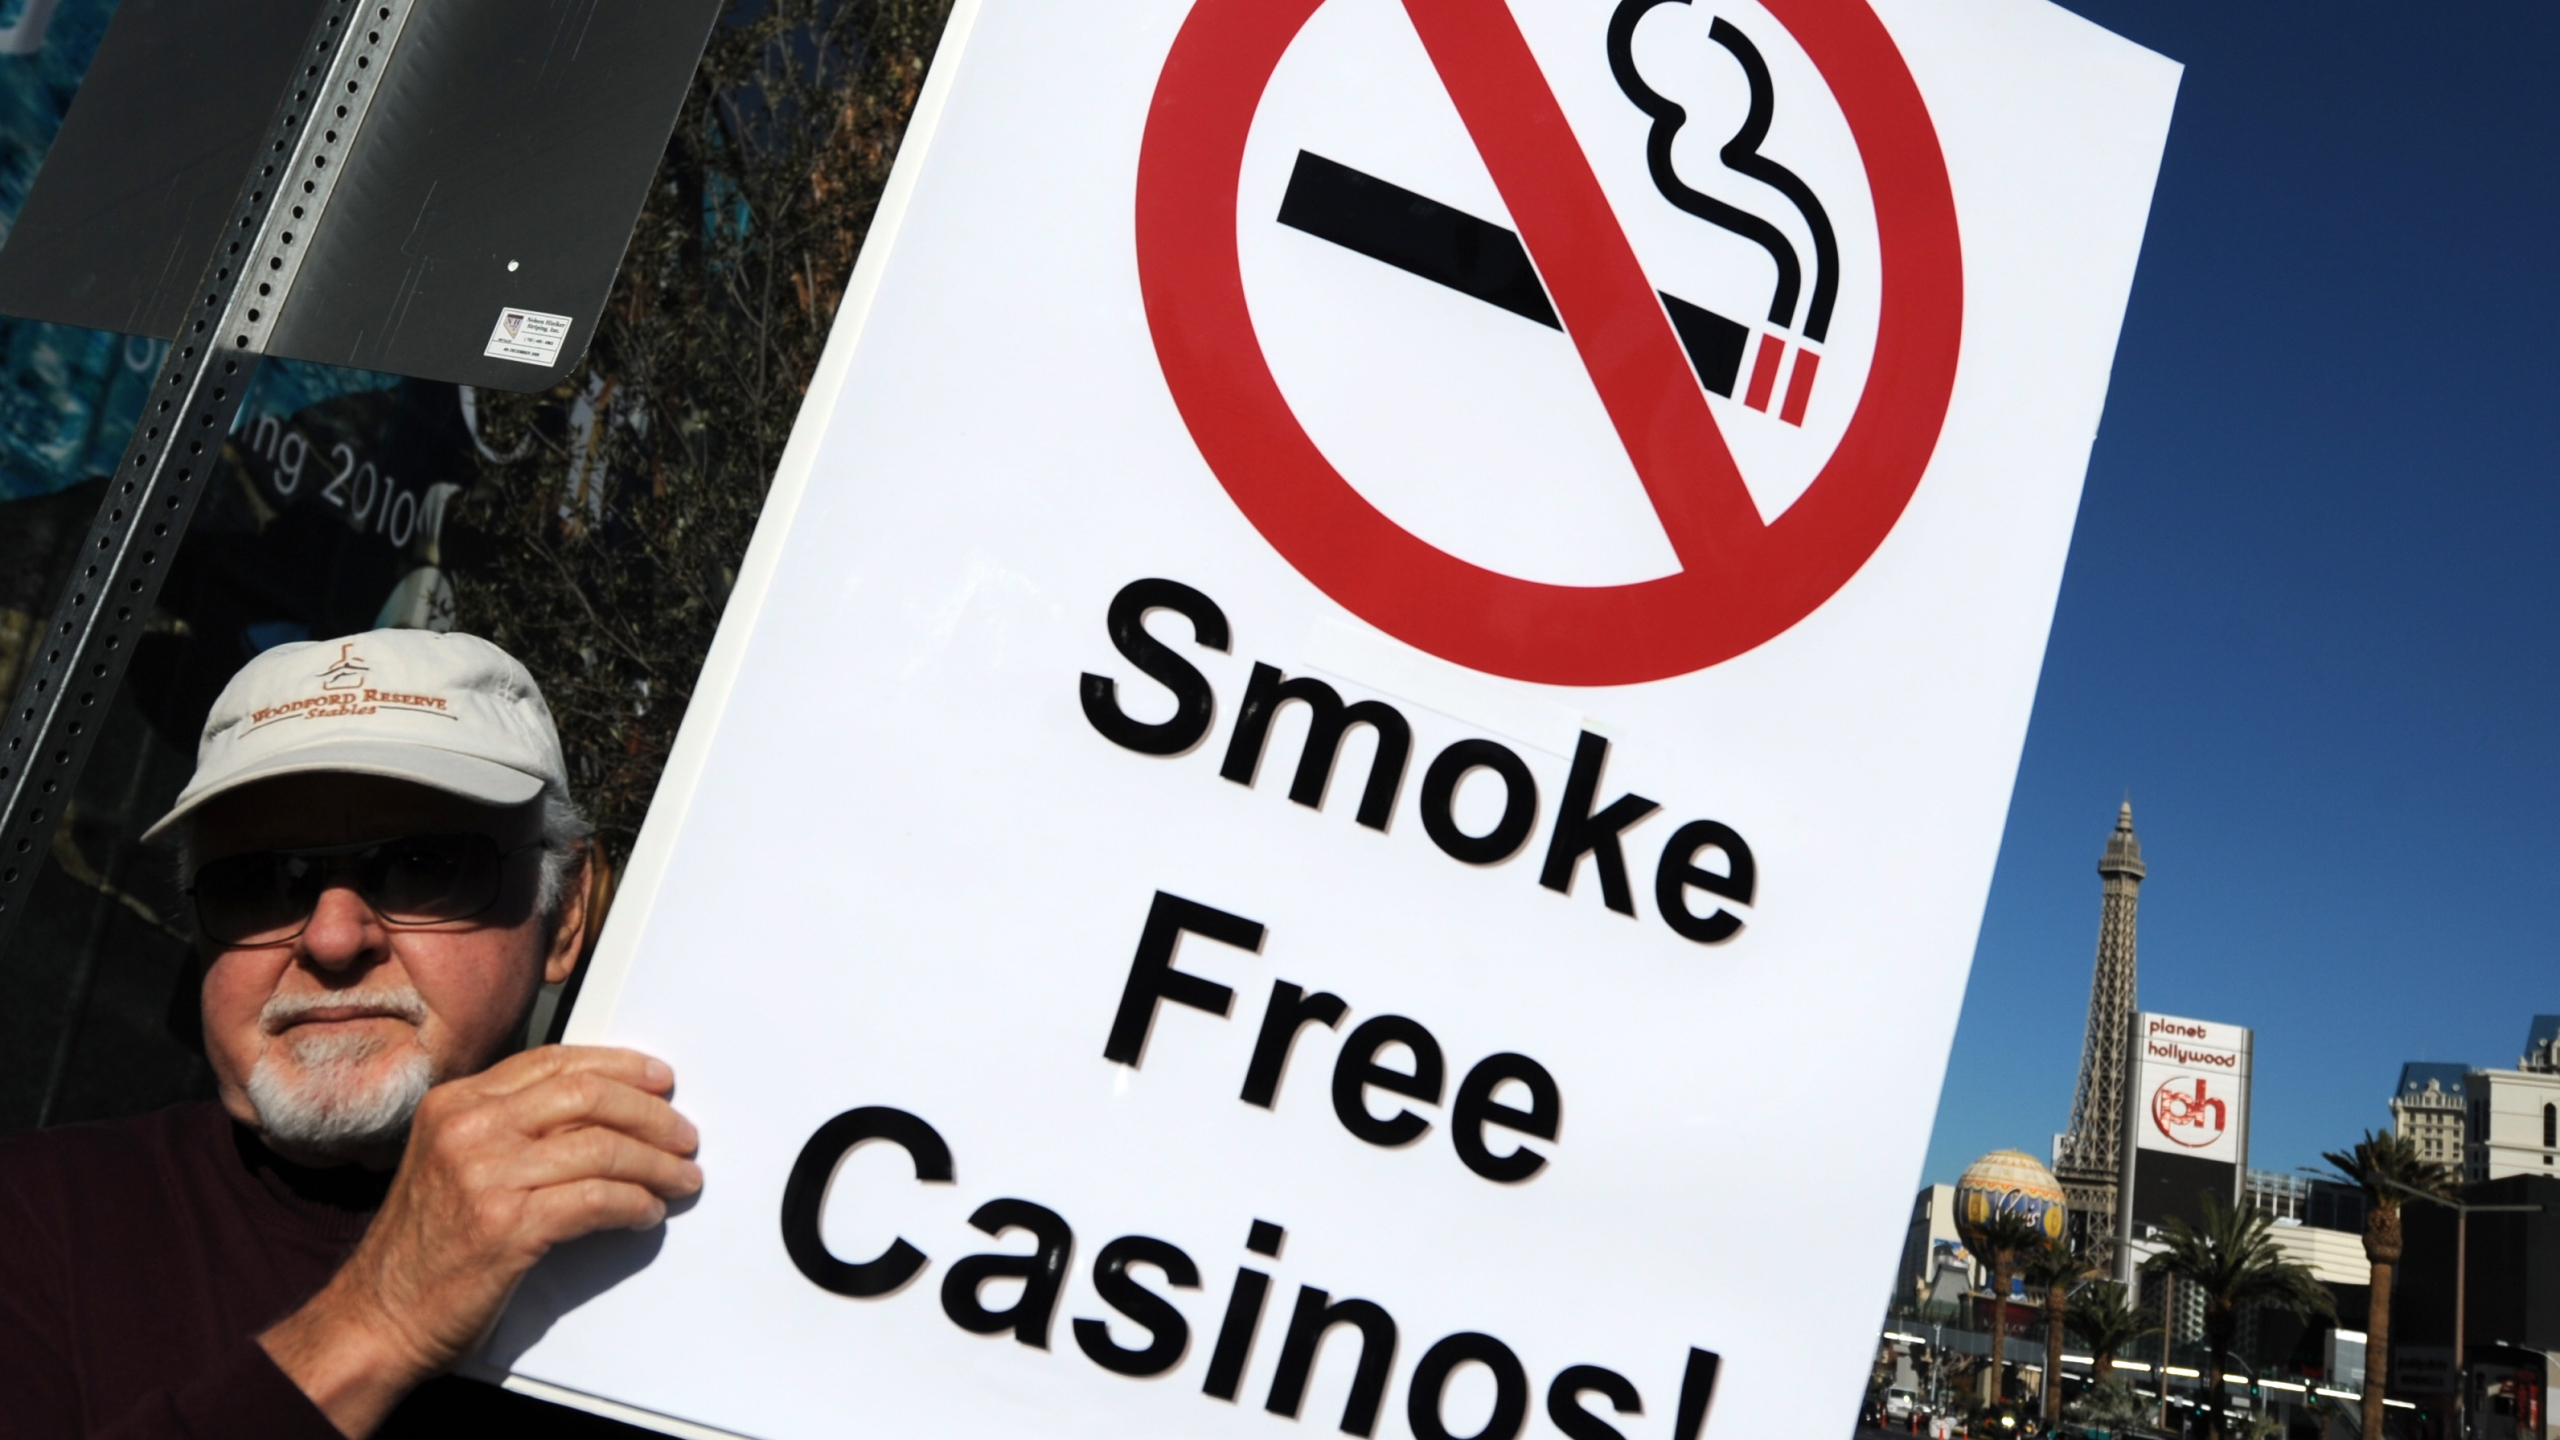 A man protests for smoke-free casinos in Las Vegas outside the CityCenter, a mixed-use urban development center on the Las Vegas Strip on Dec. 16, 2009. (Credit: GABRIEL BOUYS/AFP via Getty Images)